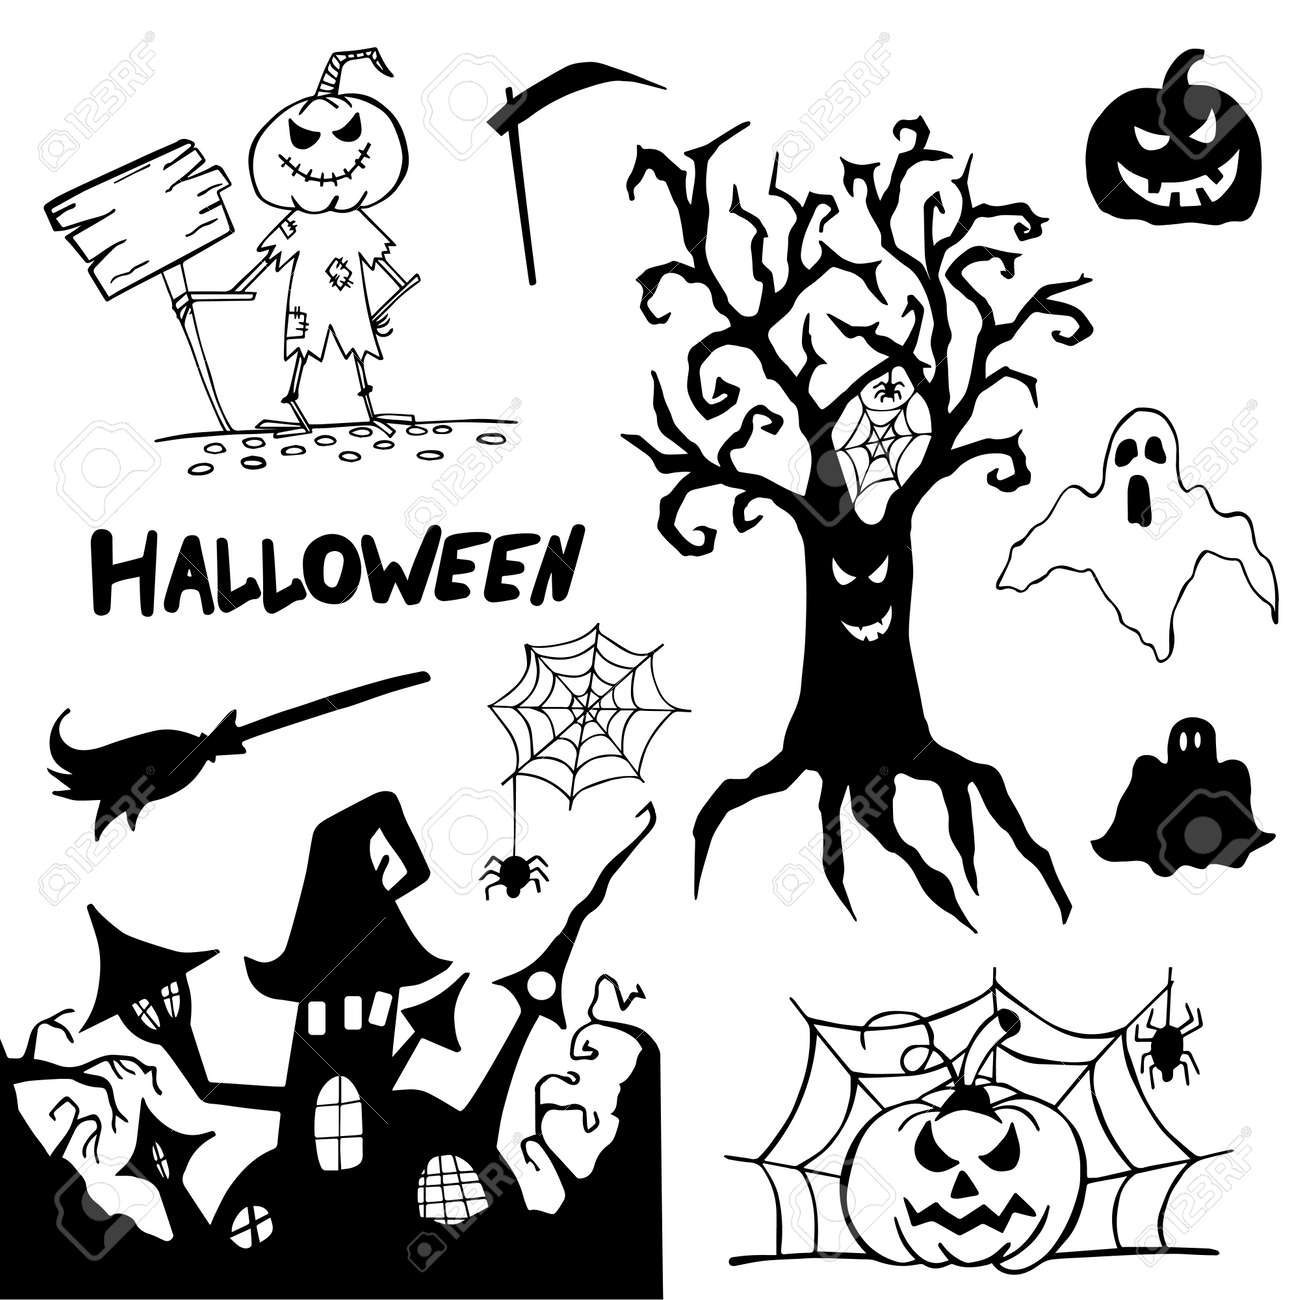 Halloween doodle set hand drawn. Halloween vector collection of holiday symbols. Pumpkin, grave, ghost, horror, fear and other drawn vector Halloween elements. Copy space. - 170750518